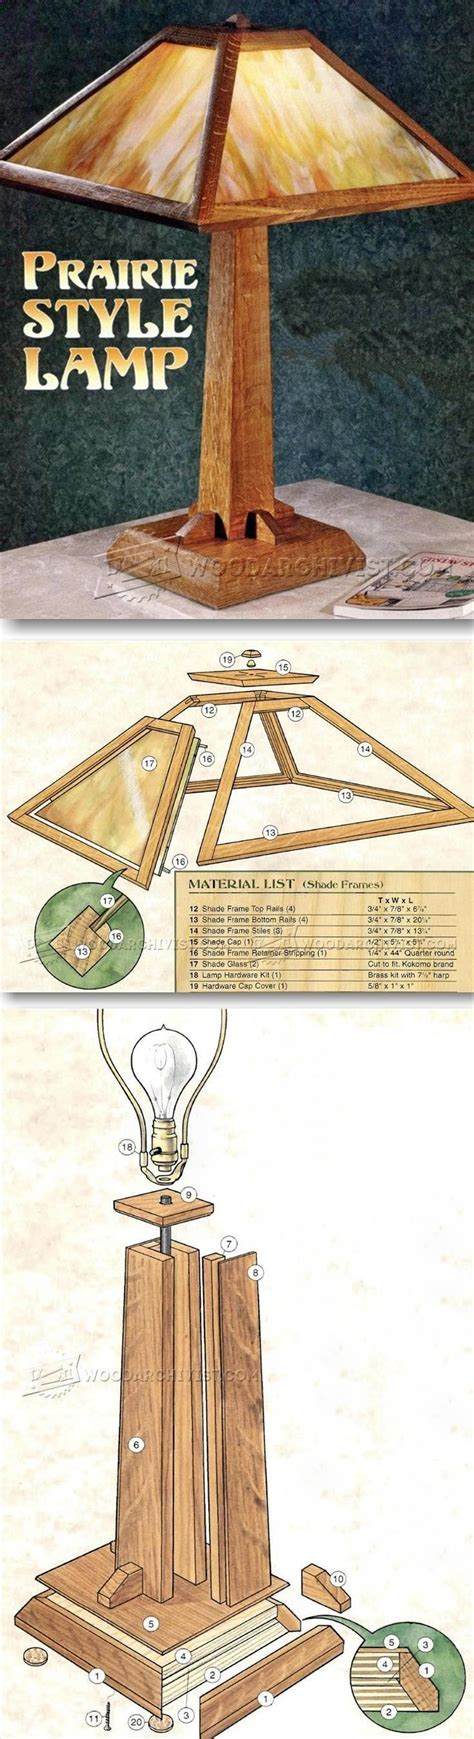 prairie table lamp plans woodworking plans  projects